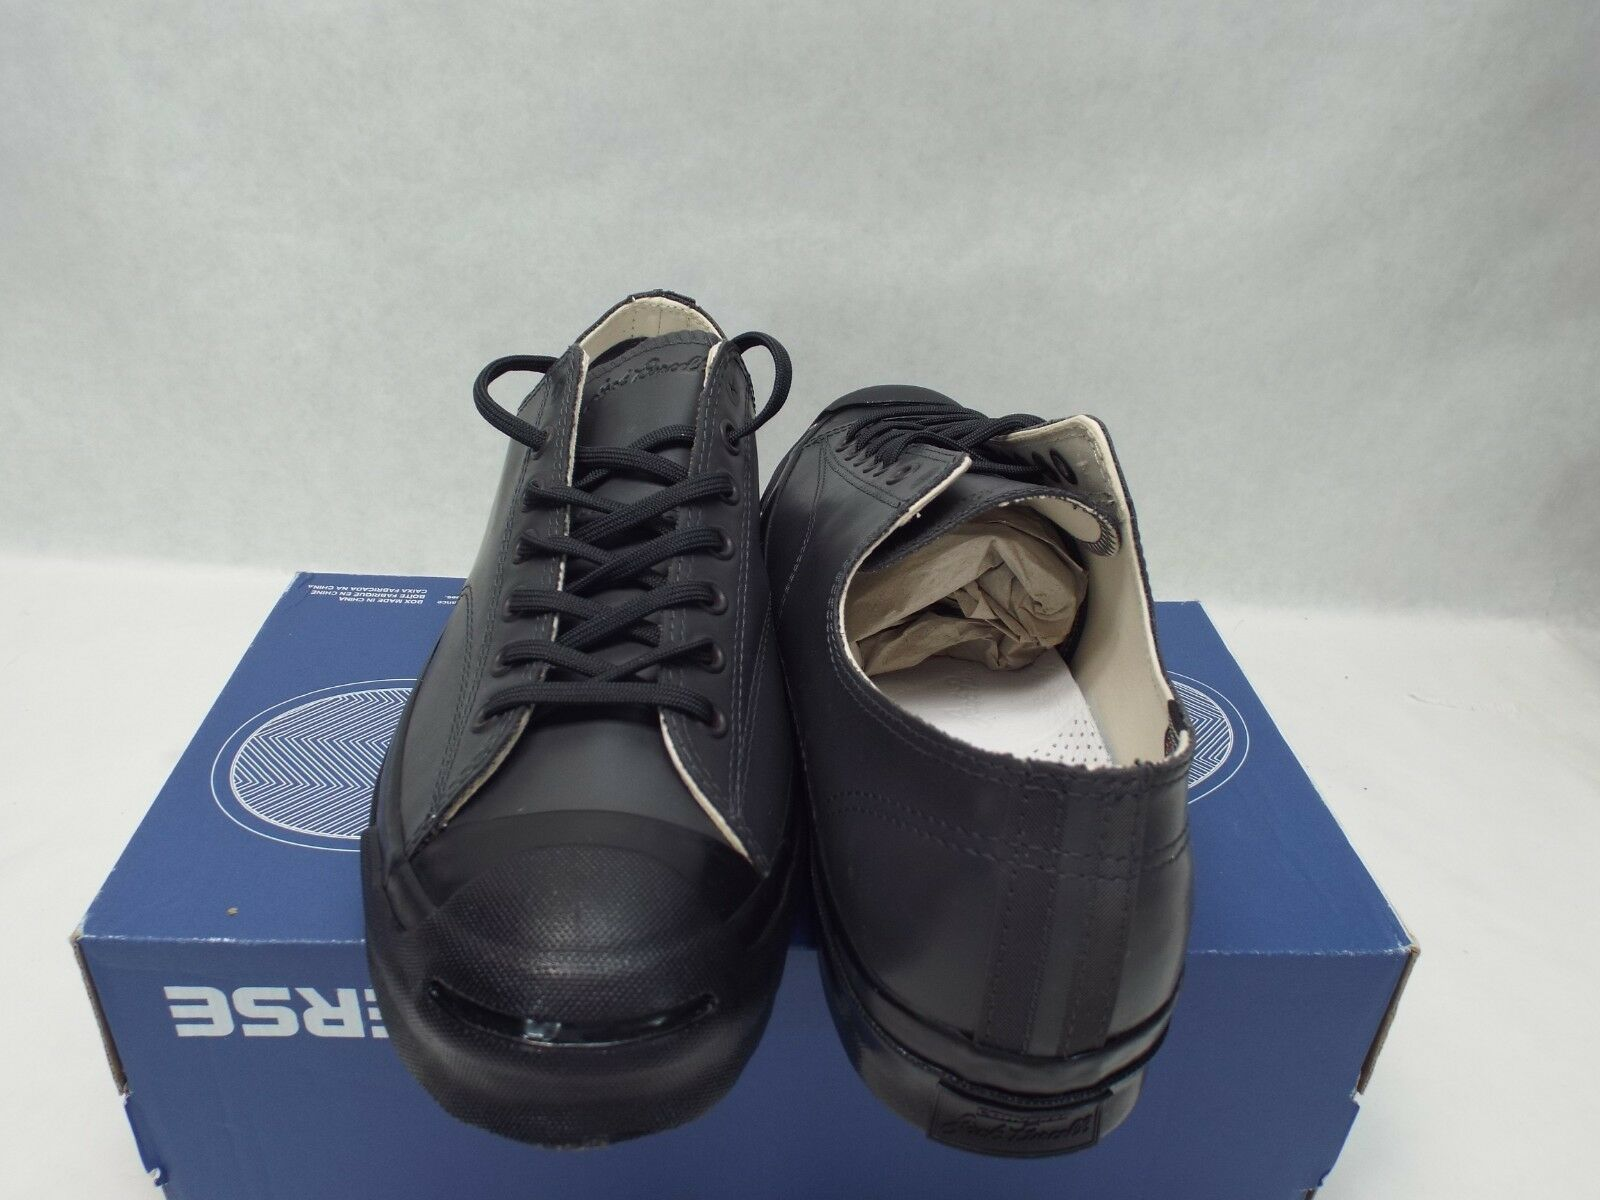 New Mens 10 Converse JP JP JP Jack Purcell OX Dark Gry Blck Leather shoes  110 147571C fa543a